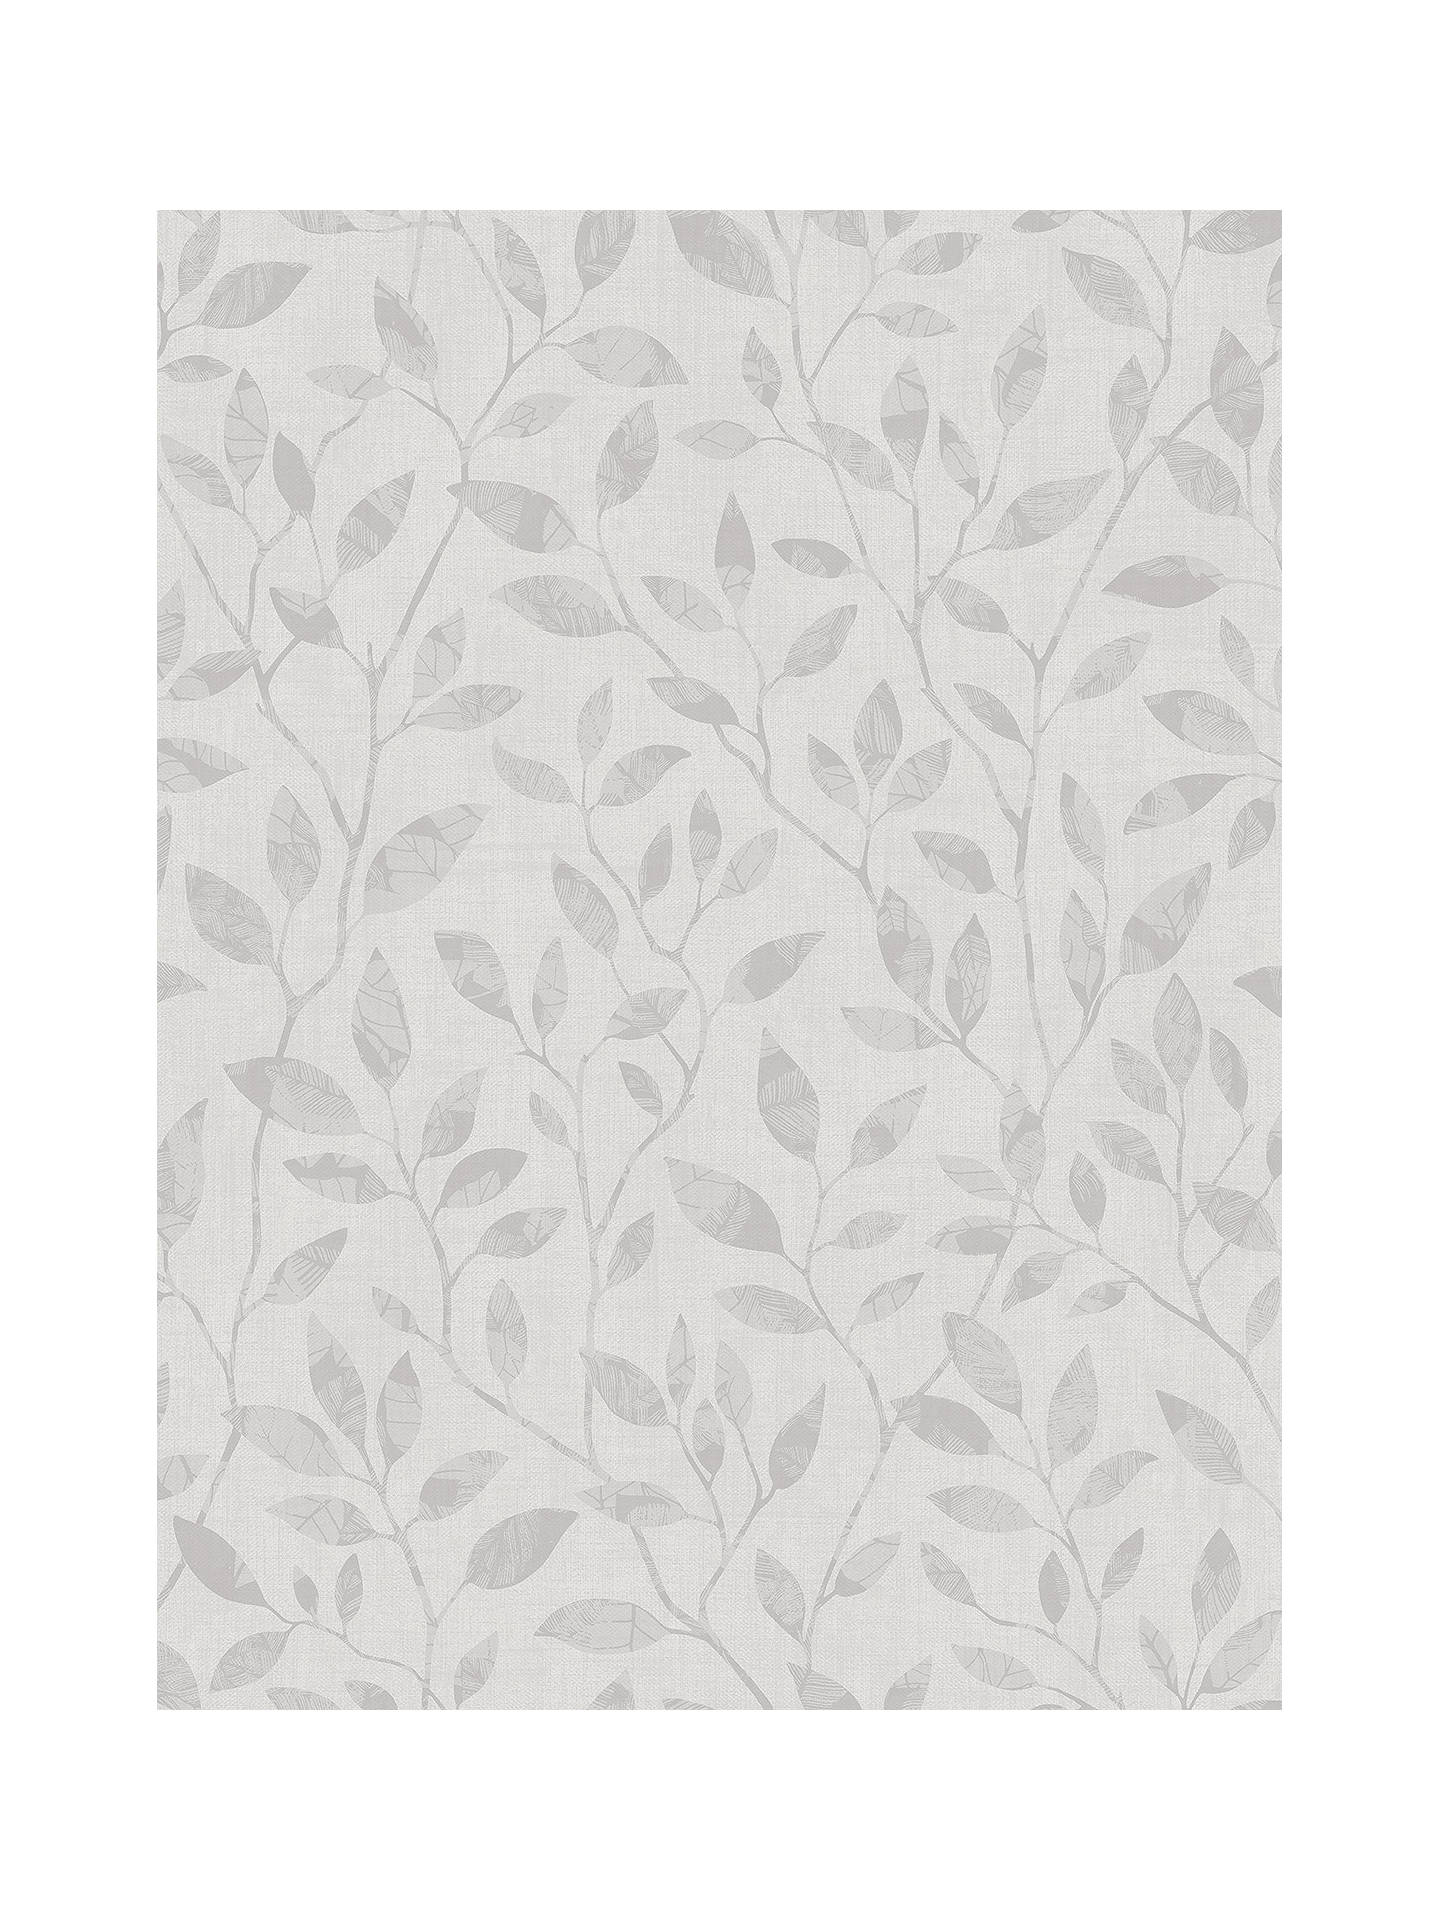 Buy Engblad & Co Willow Wallpaper, 8838 Online at johnlewis.com